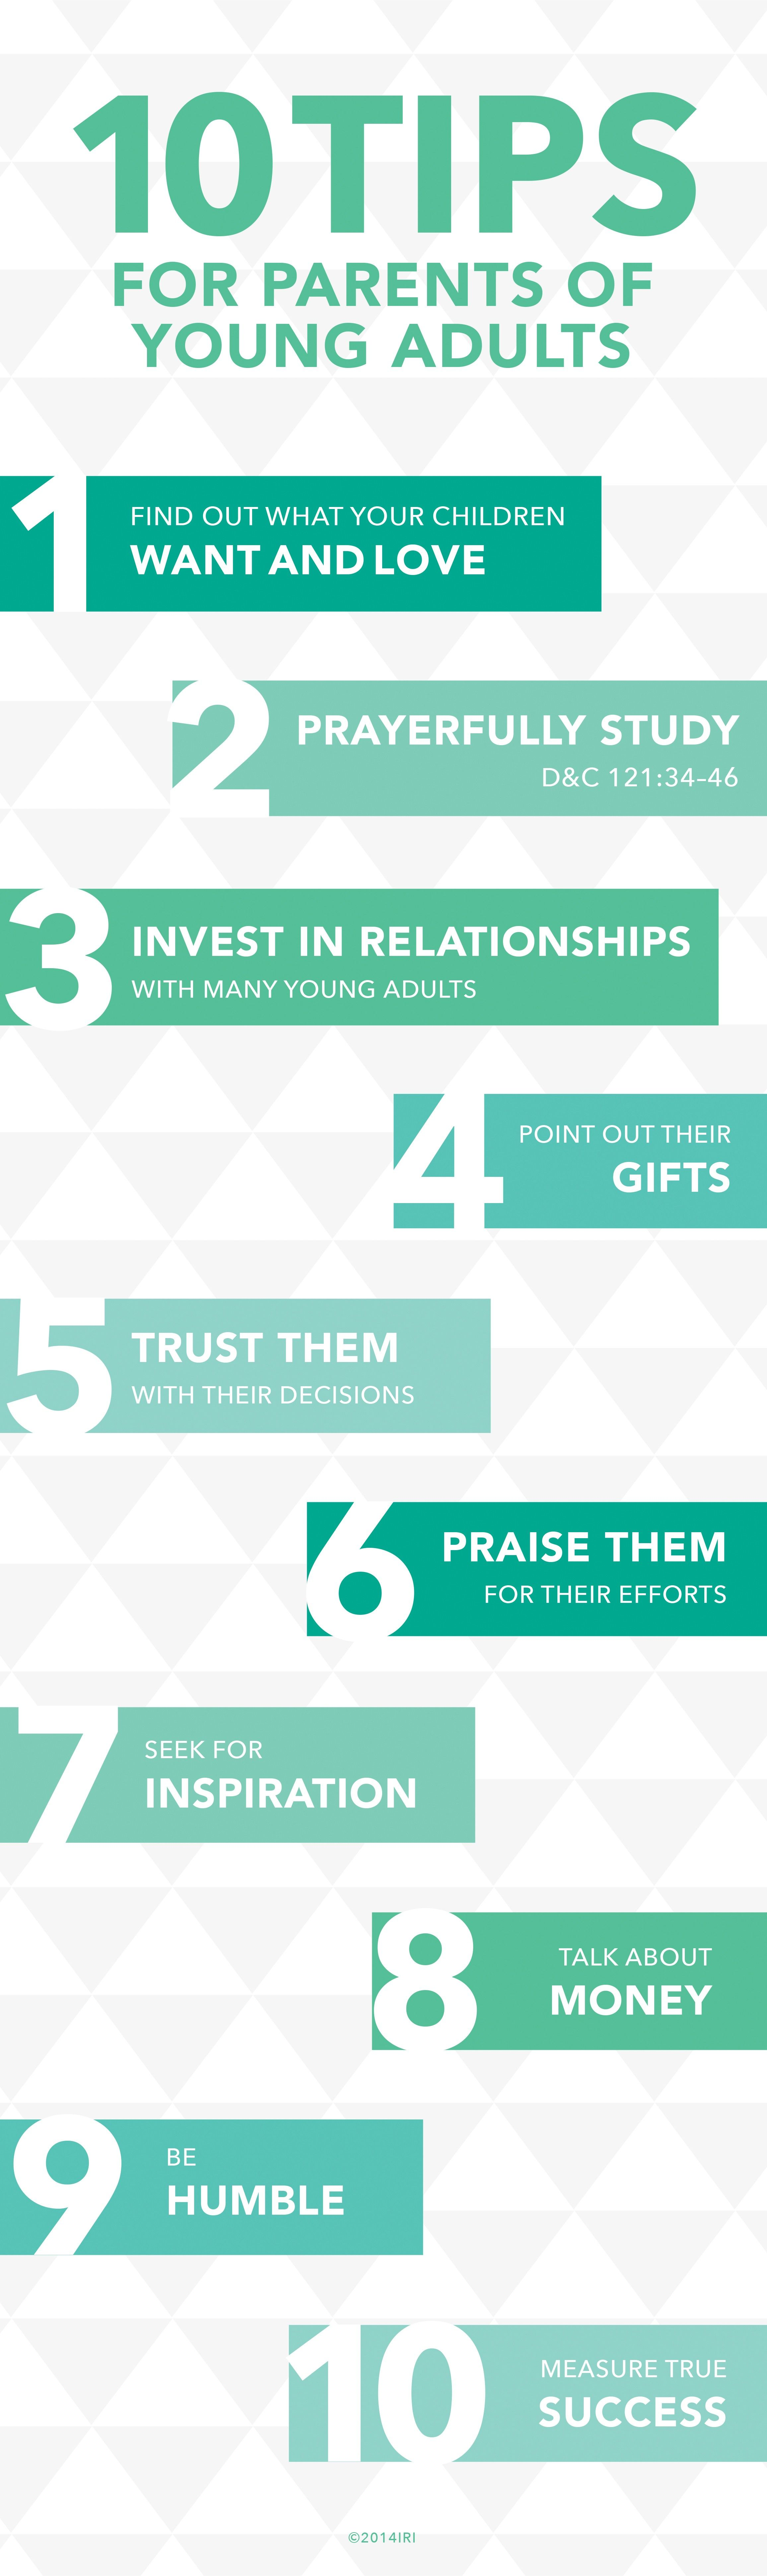 """10 tips for parents of young adults: """"1. Find out what your children want and love. 2. Prayerfully study D&C 121:34–46. 3. Invest in relationships with many young adults. 4. Point out their gifts. 5. Trust them with their decisions. 6. Praise them for their efforts. 7. Seek for inspiration. 8. Talk about money. 9. Be humble. 10. Measure true success.""""—Wendy Ulrich, """"Ten Tips for Parents of Young Adults"""""""